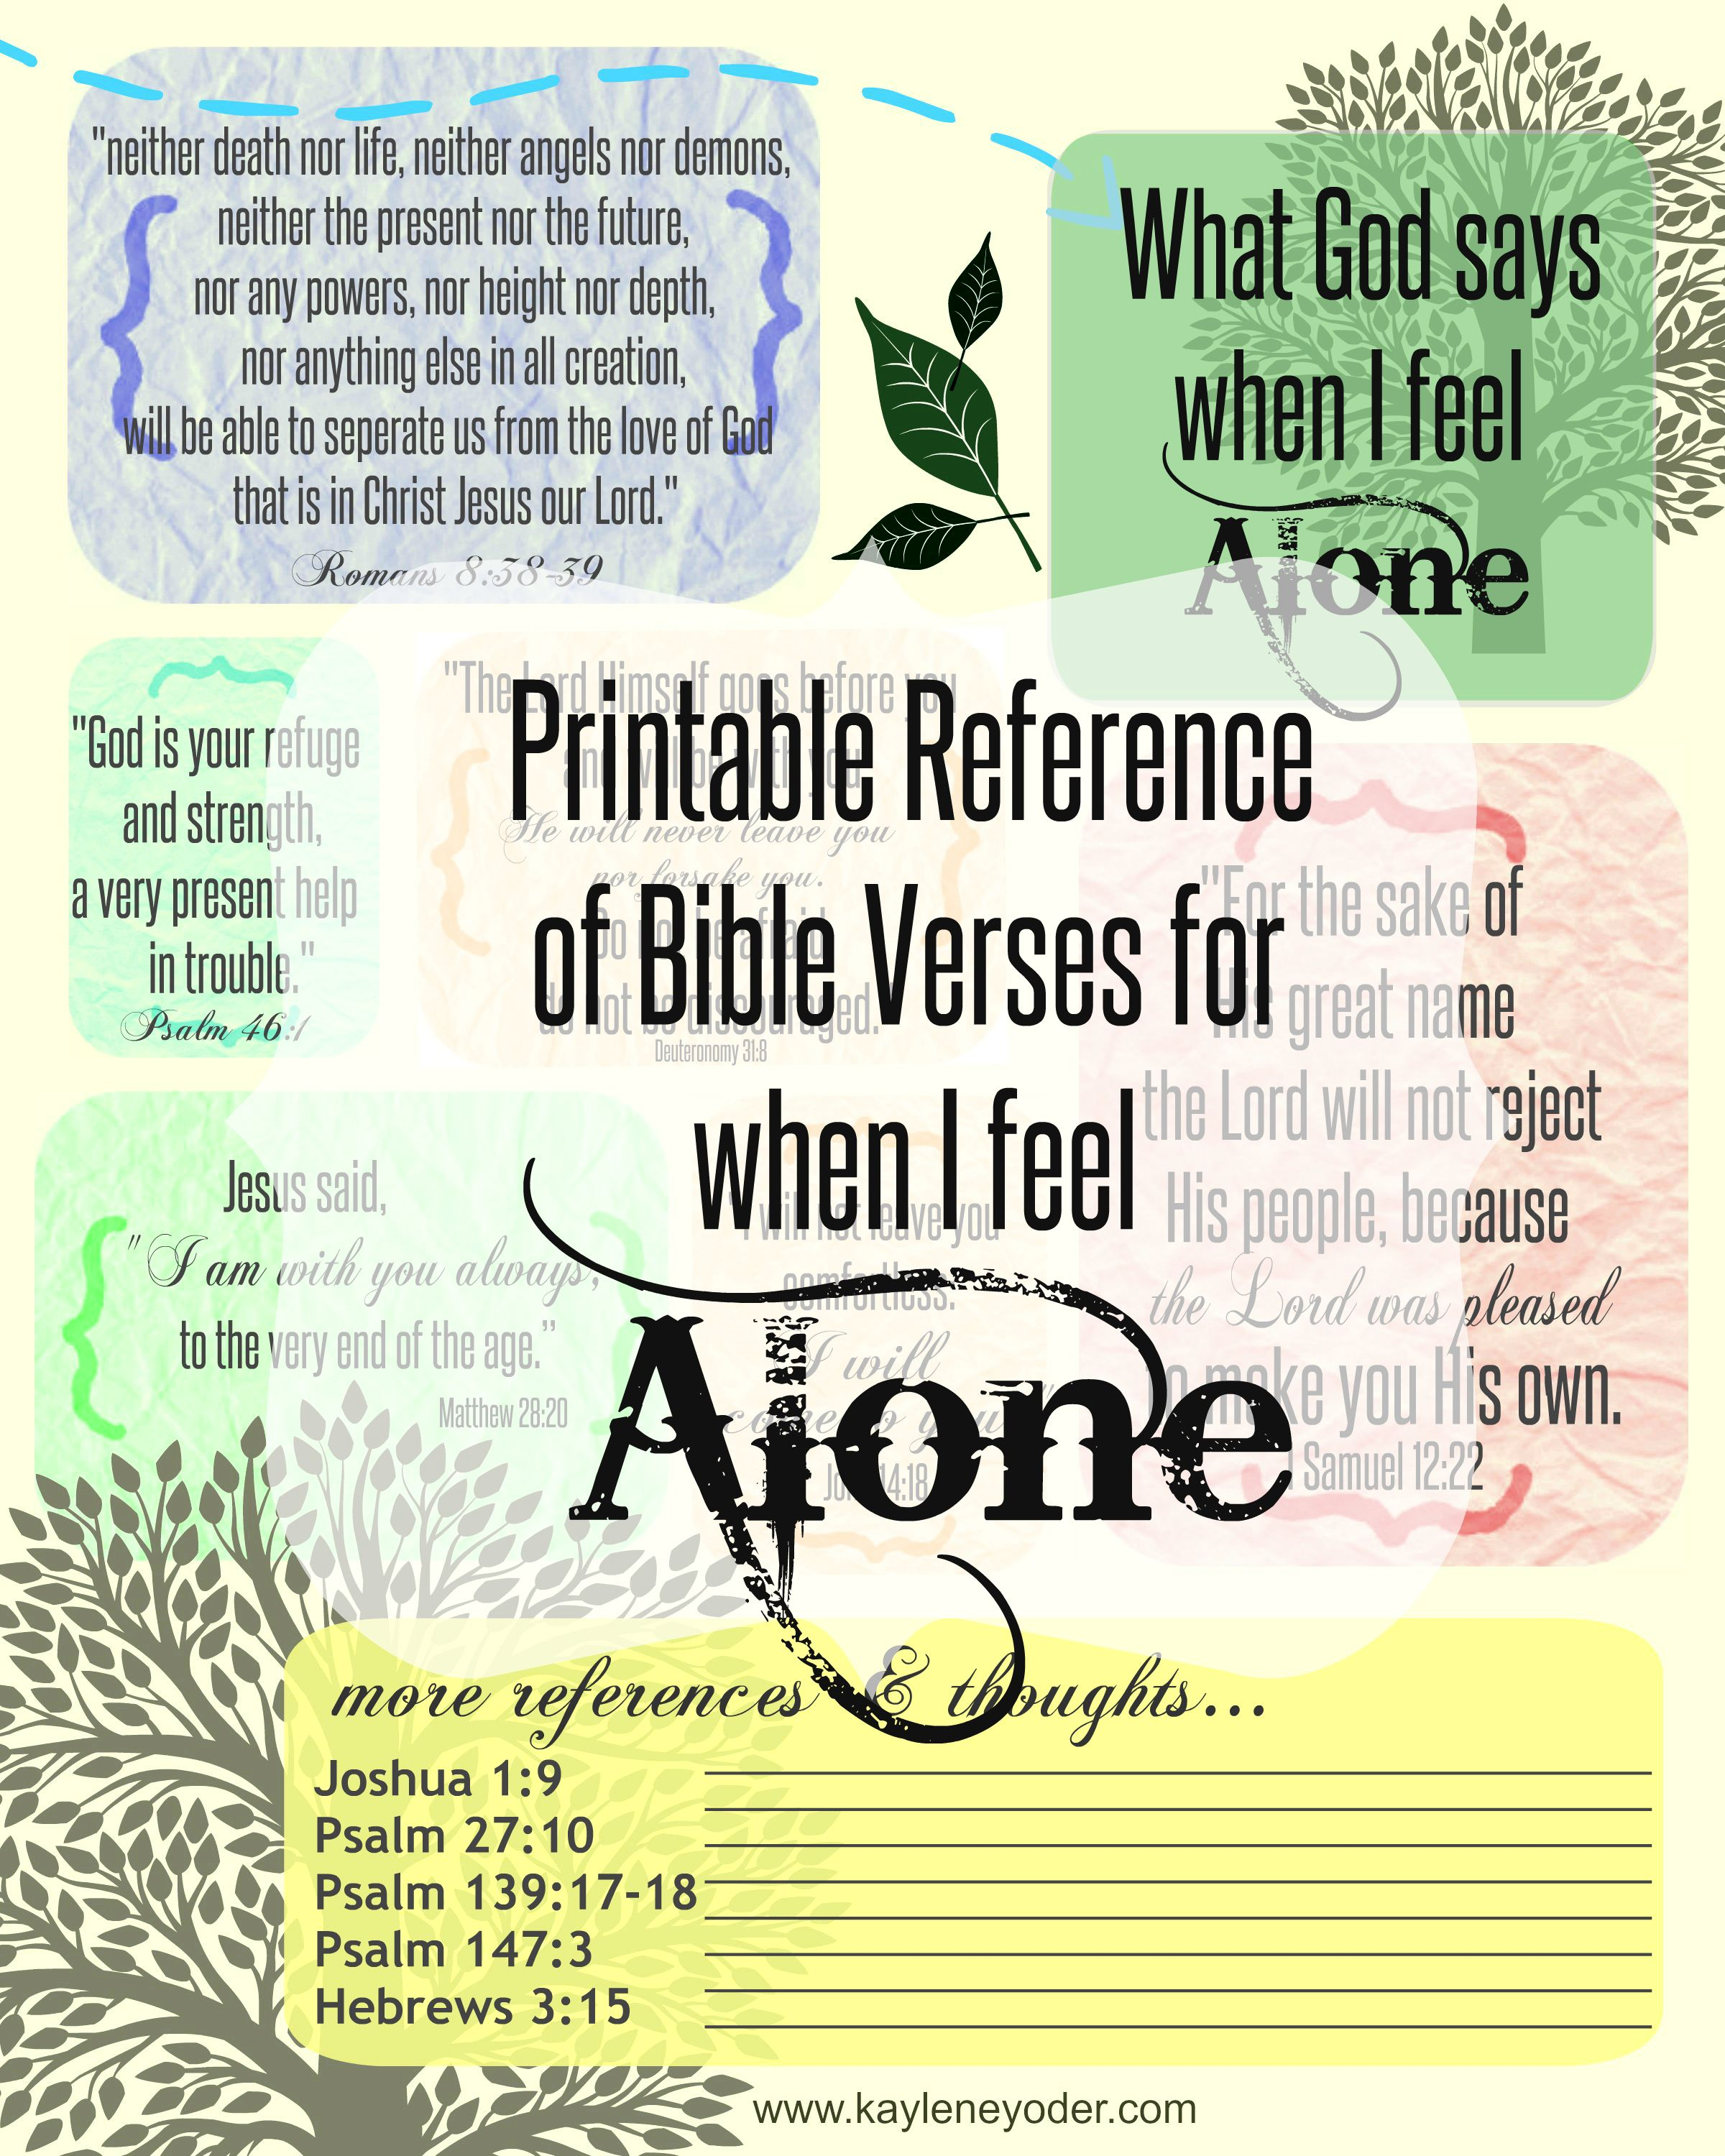 What God says when I feel Alone 1